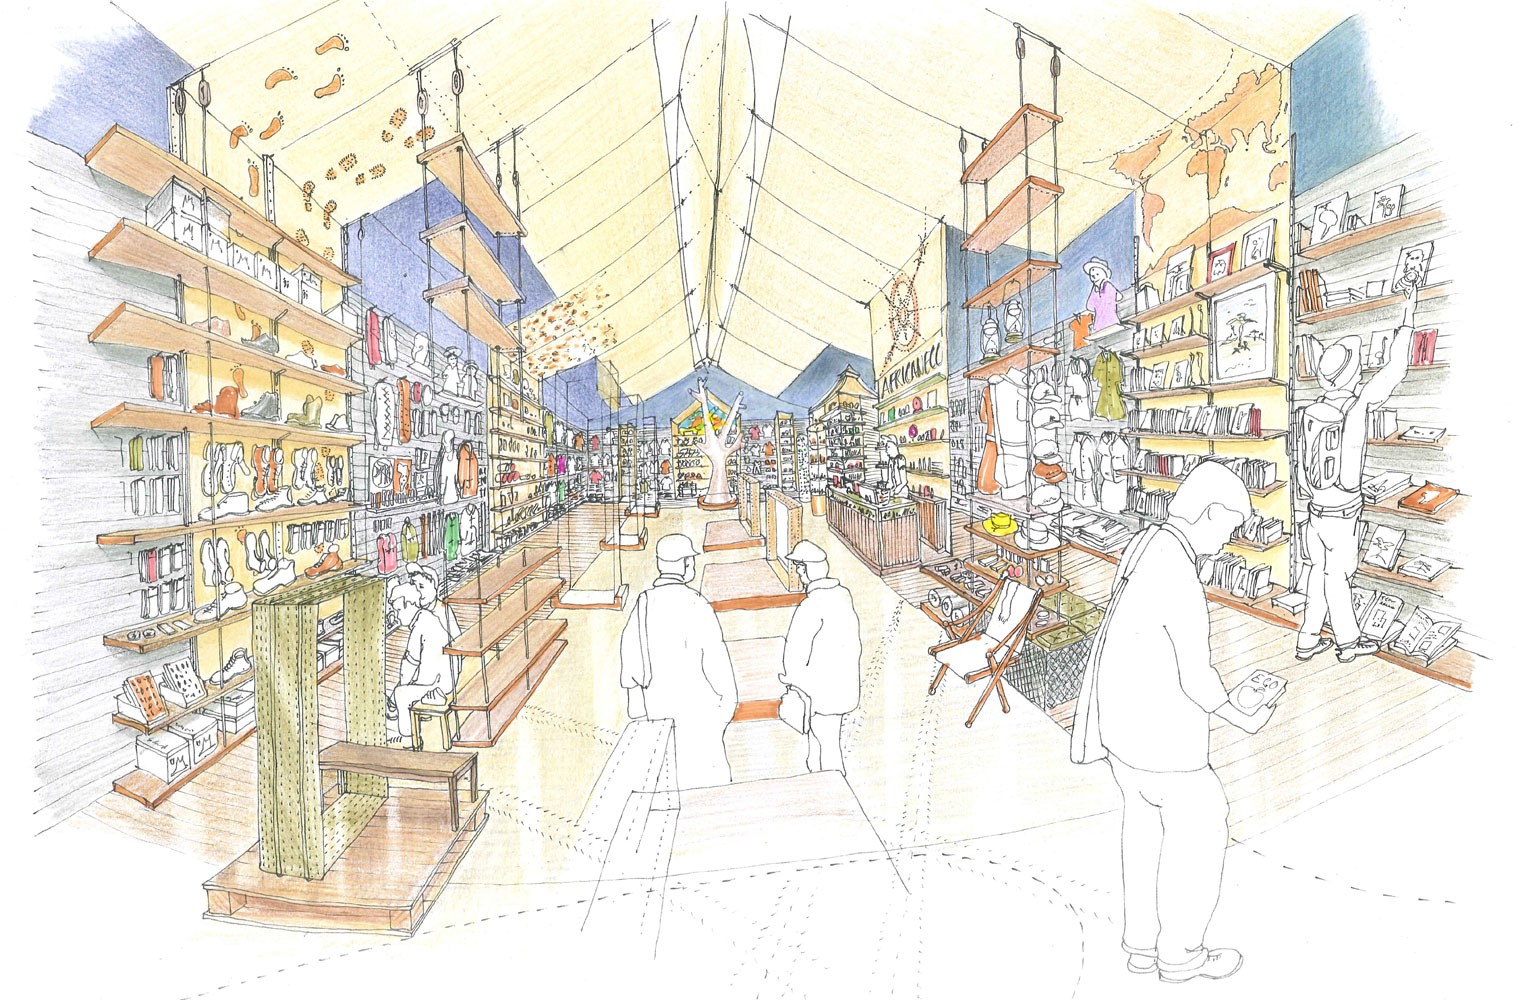 African Eco Store - Concept Drawing